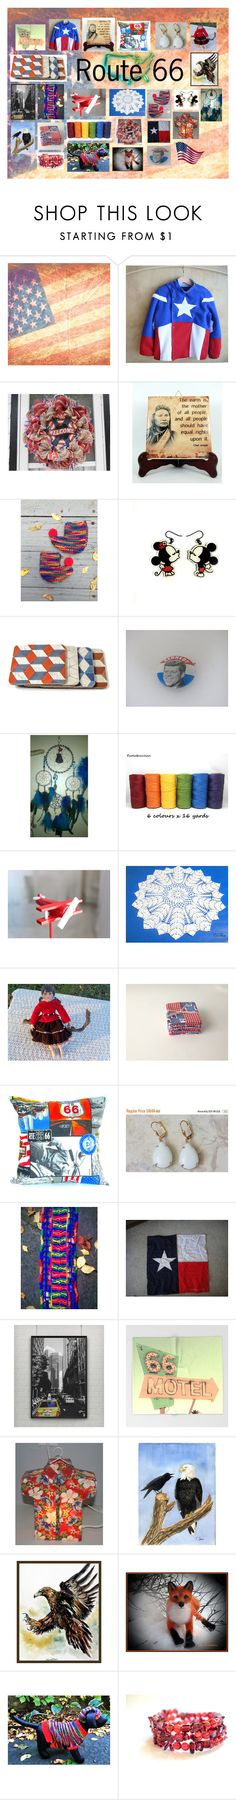 """""""Route 66: Vintage and Handmade Gifts"""" by paulinemcewen ❤ liked on Polyvore featuring Harley-Davidson, TAXI and vintage"""